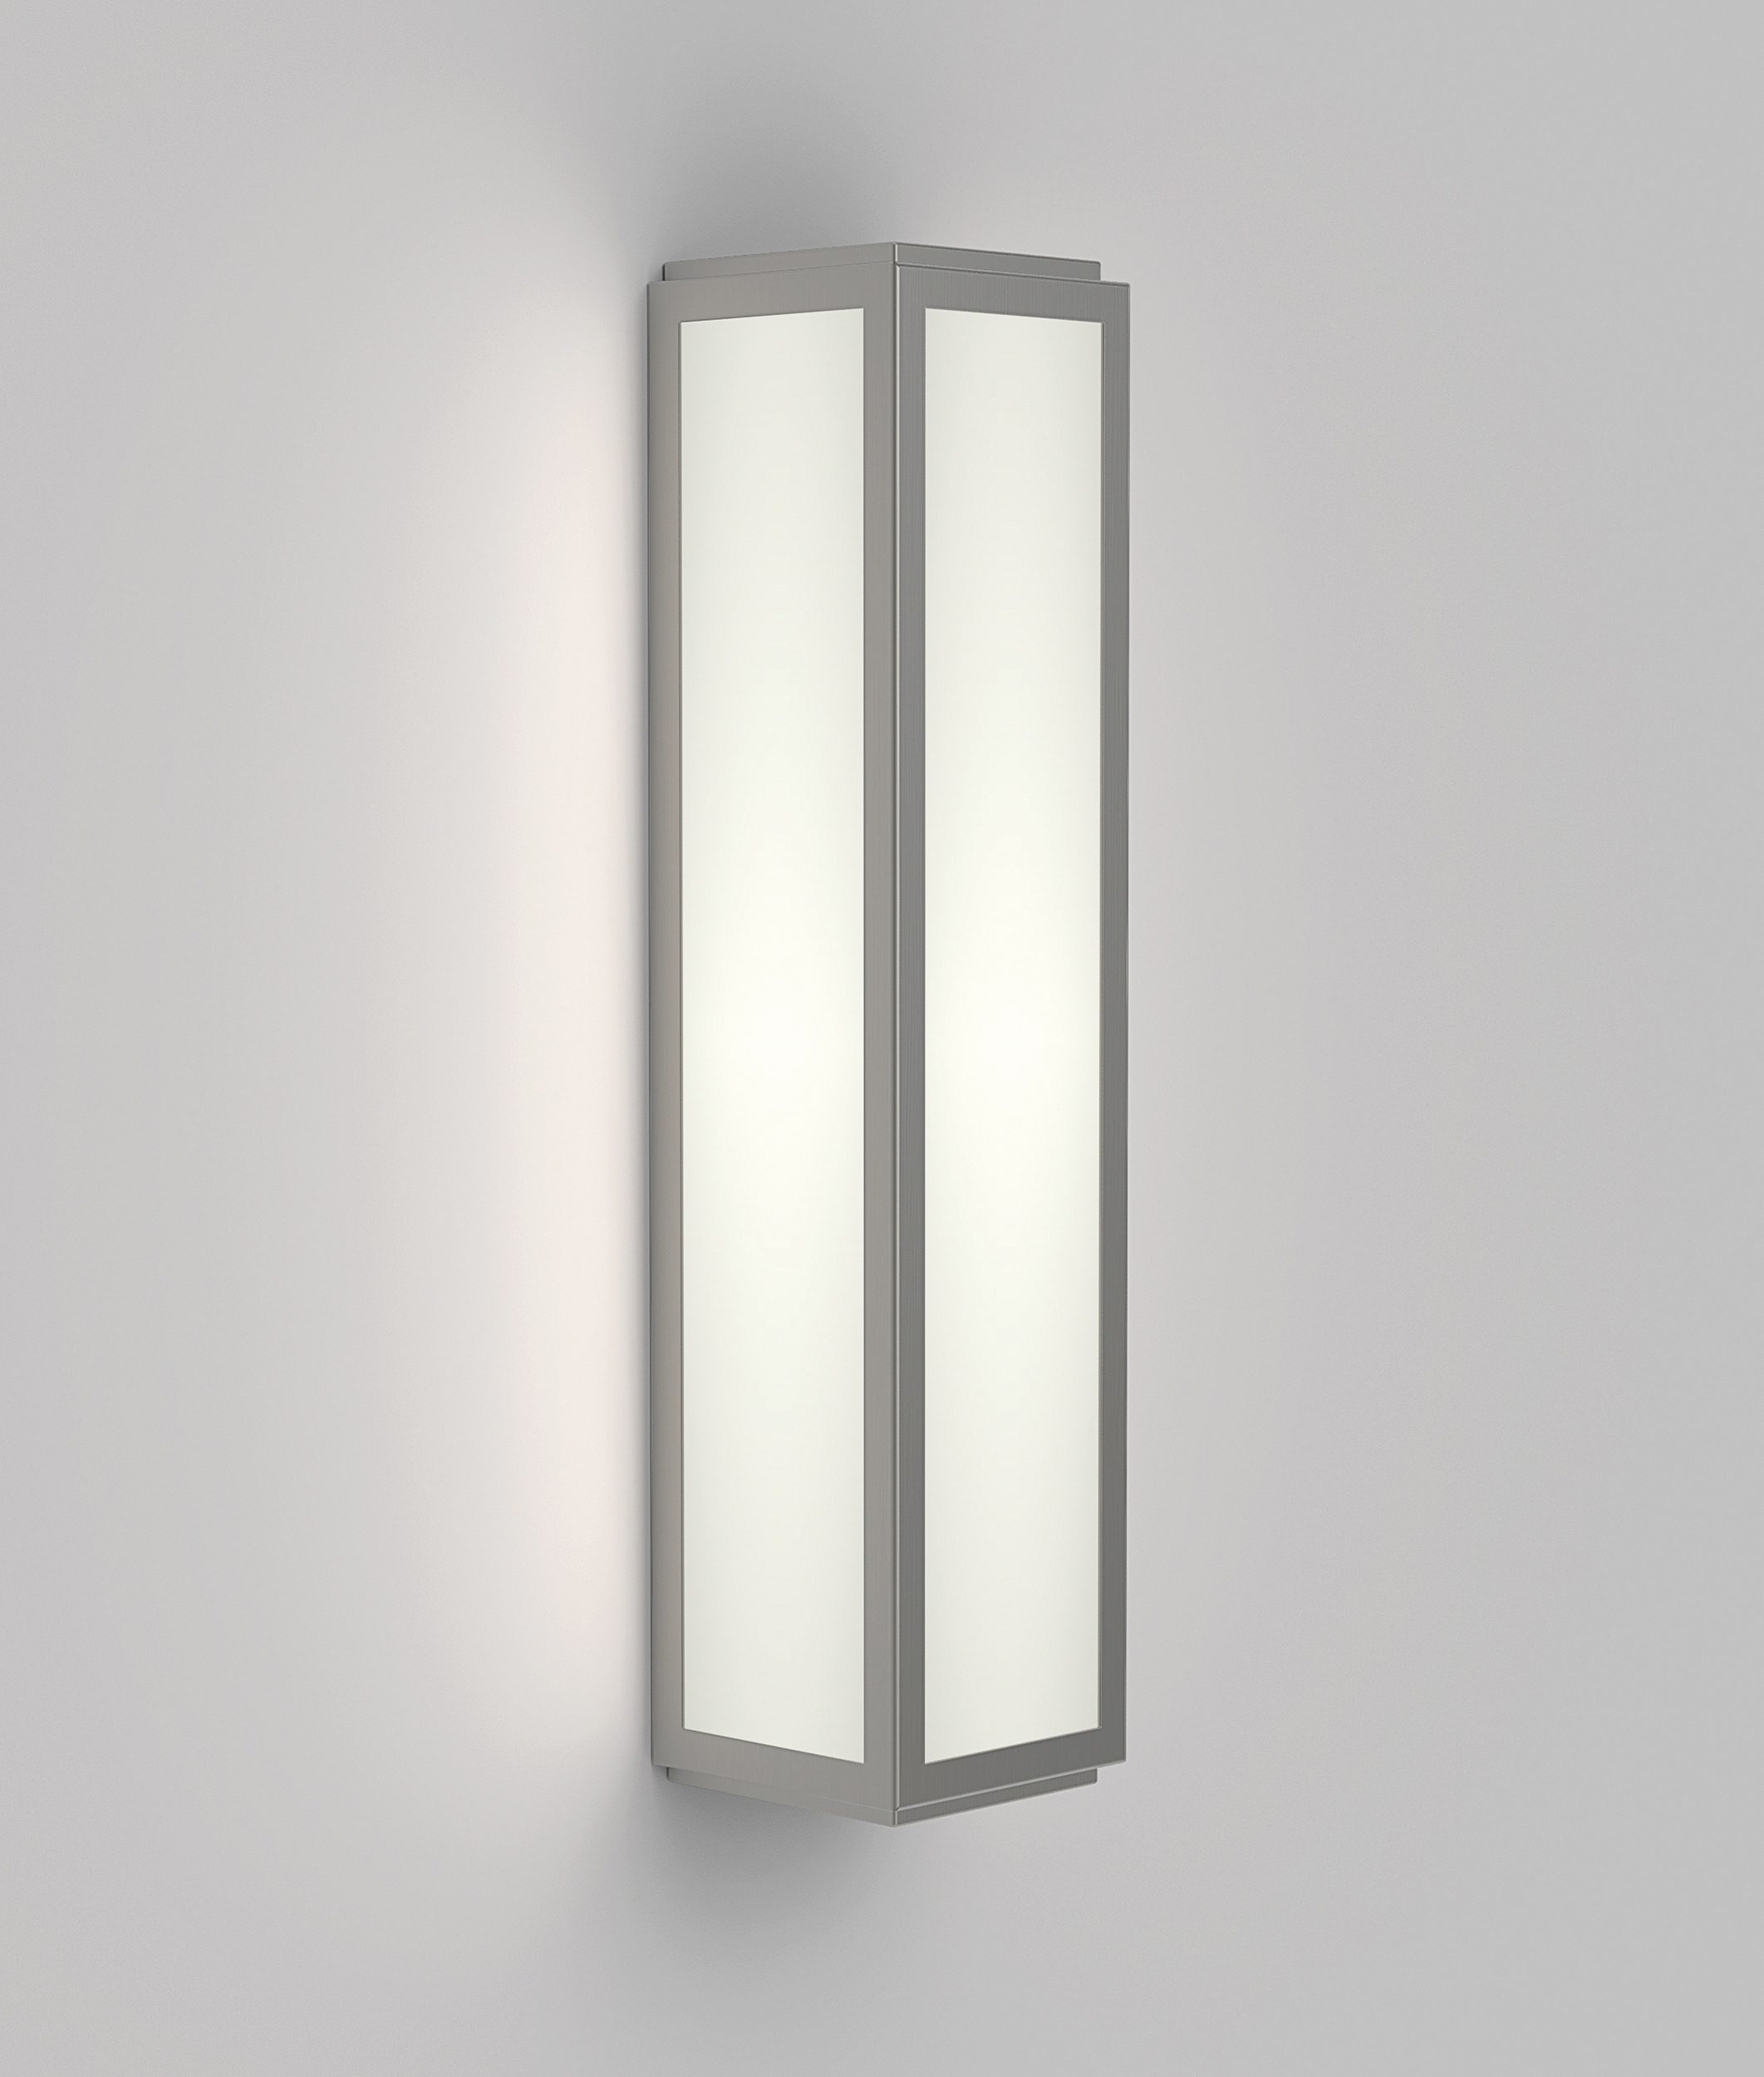 Stylish Low Energy Wall Light In Art Deco Style